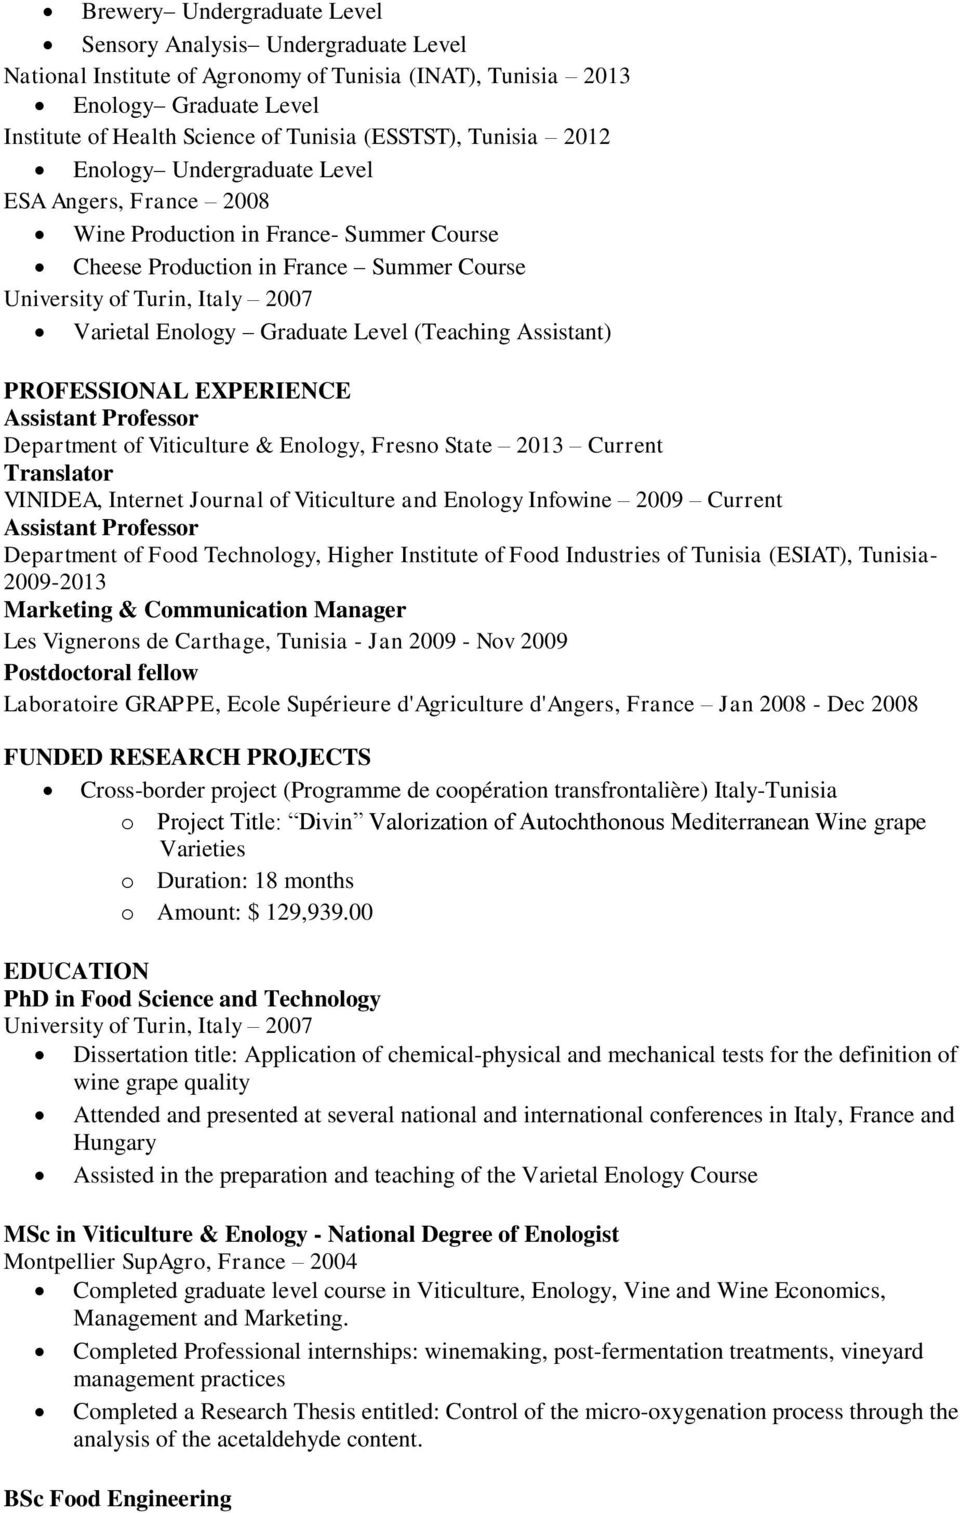 Graduate Level (Teaching Assistant) PROFESSIONAL EXPERIENCE Department of Viticulture & Enology, Fresno State 2013 Current Translator VINIDEA, Internet Journal of Viticulture and Enology Infowine